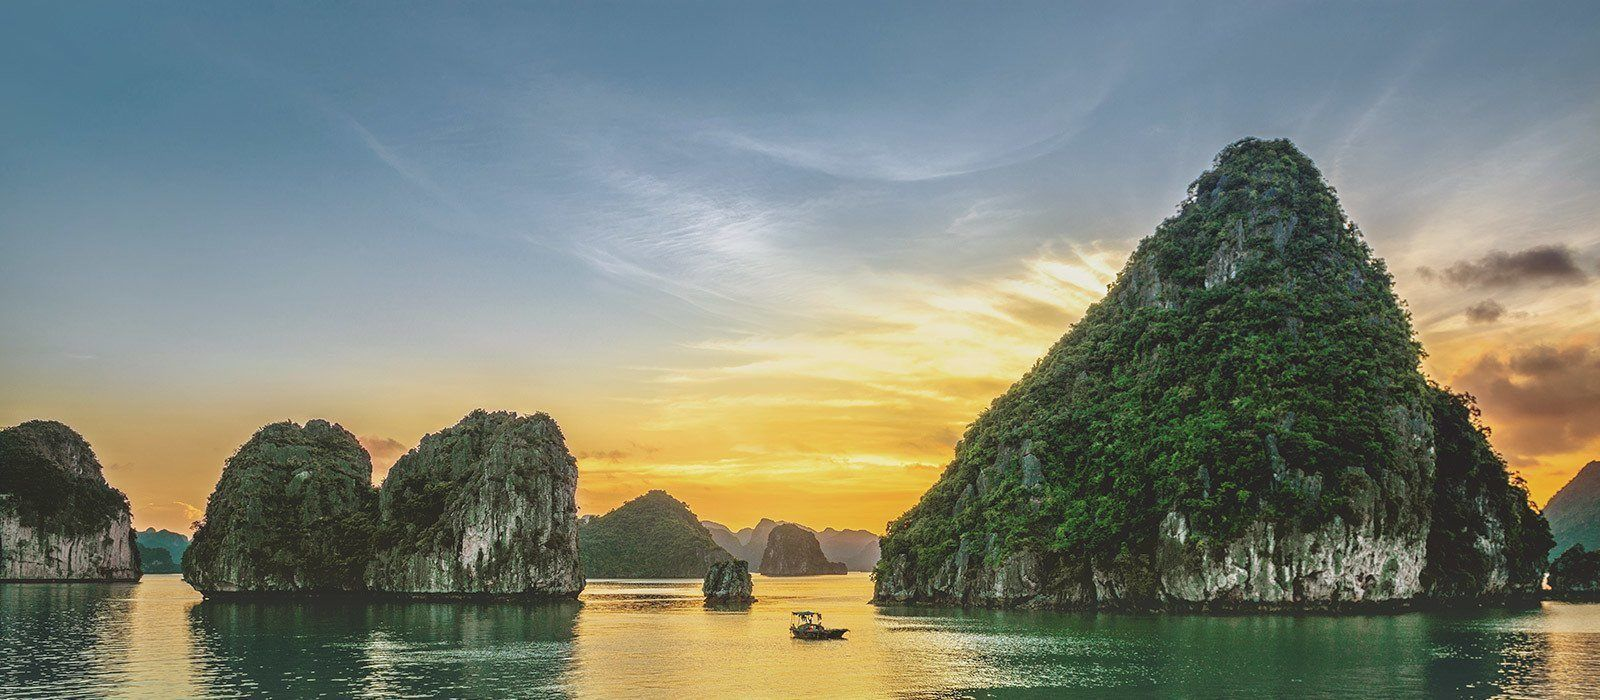 Asia Tour Luxury Amp Private Tours To Asia Enchanting Travels